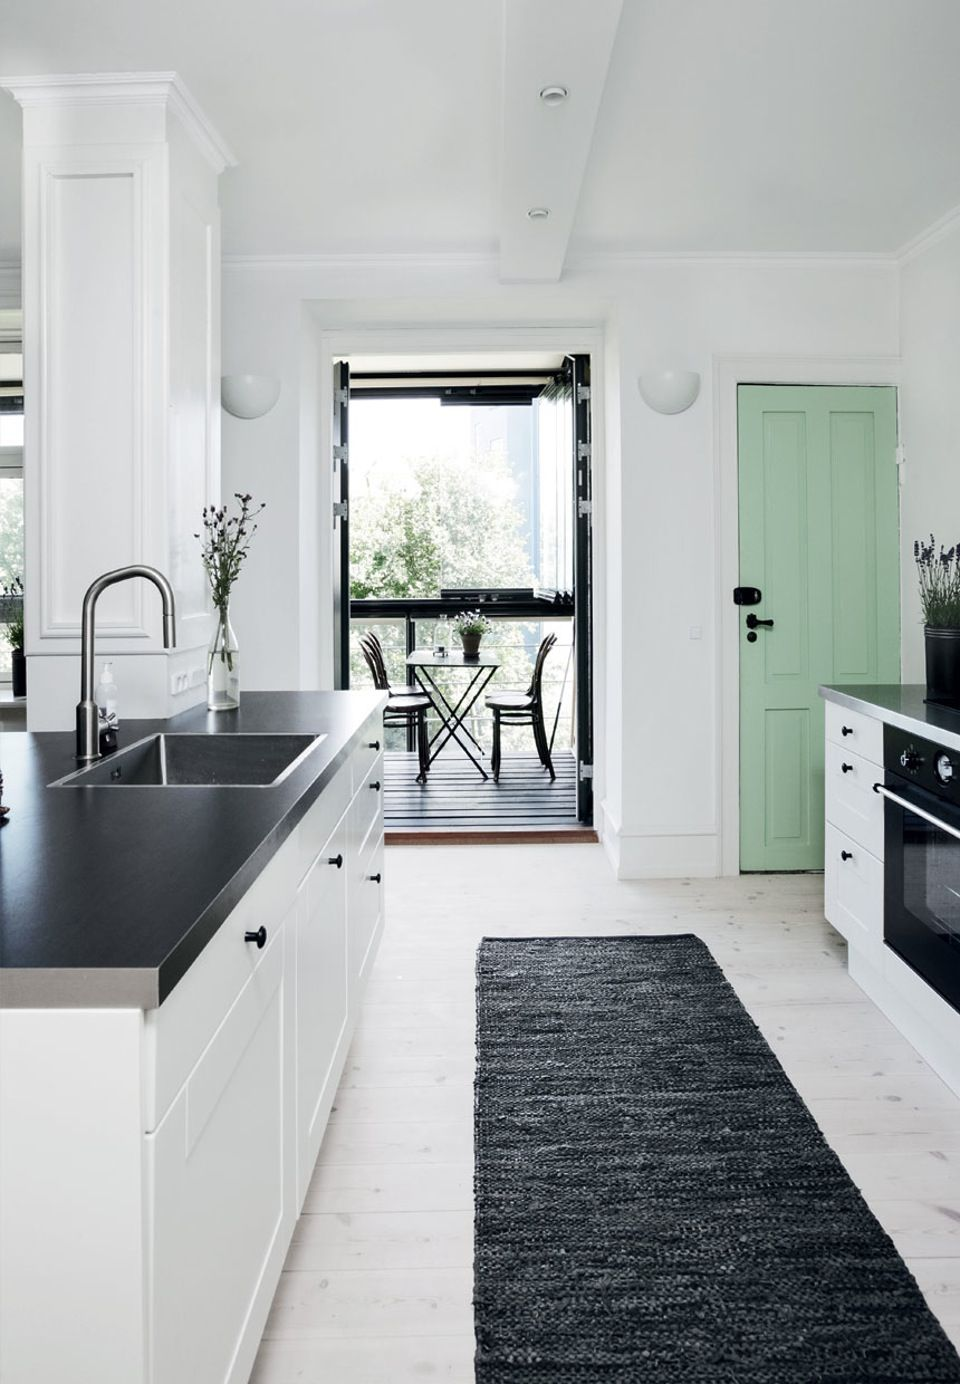 Adding just a hint of color in one place adds an accent element that ...